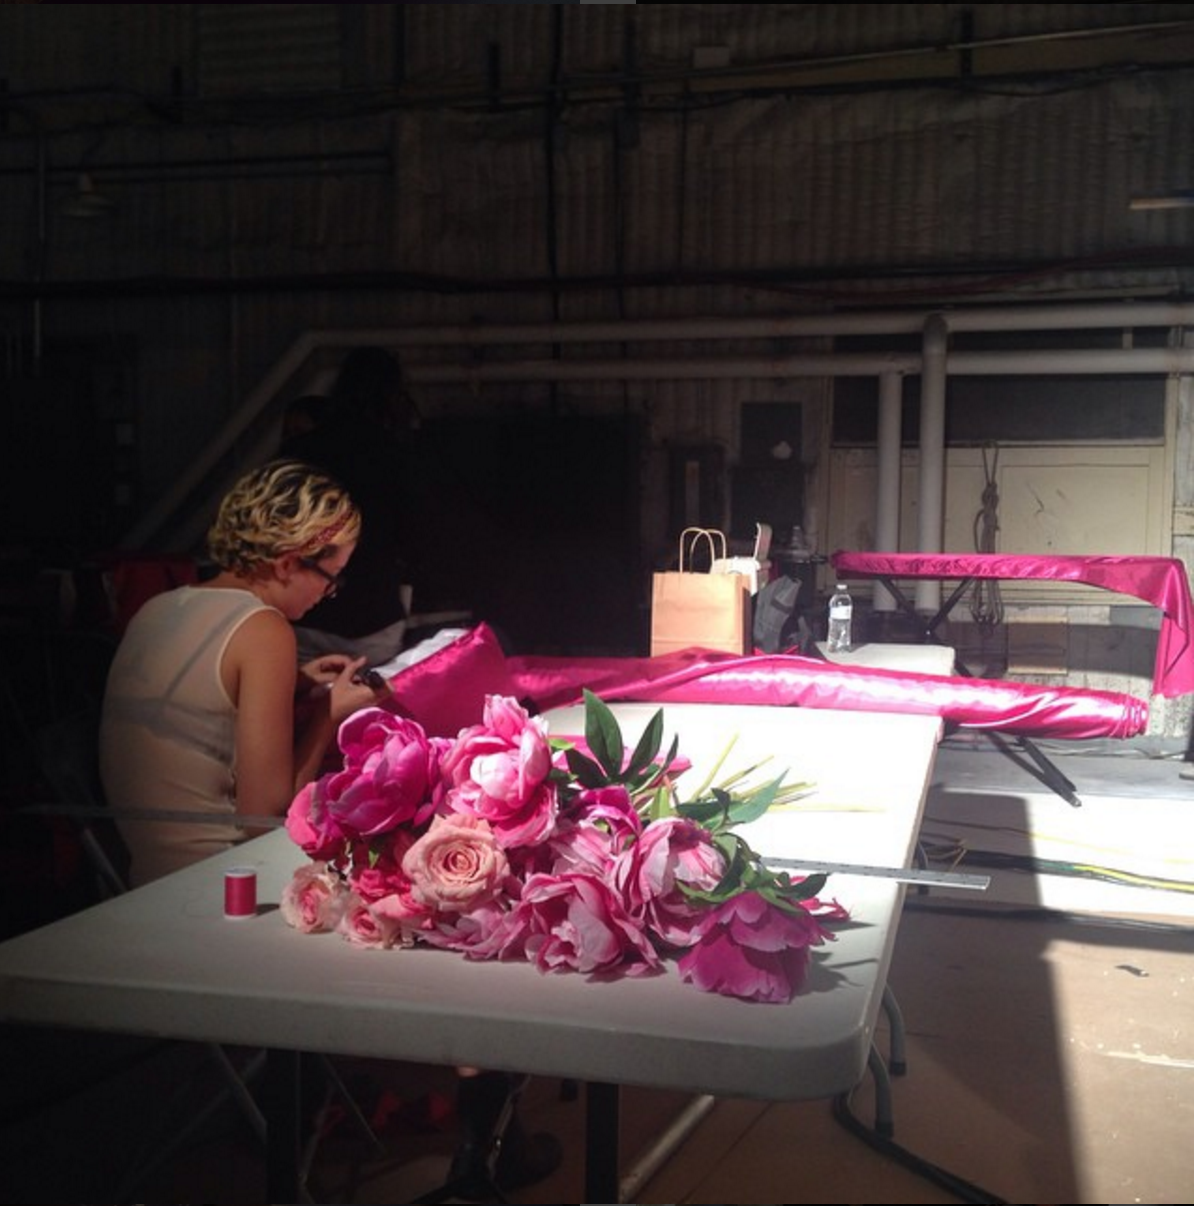 Like a Dutch still life, Maddie putting the finishing touches on our peonies before we make the bed of flowers after sourcing 6,000 beautiful silk peonies that then each needed to be hand sewn a point for attachment.